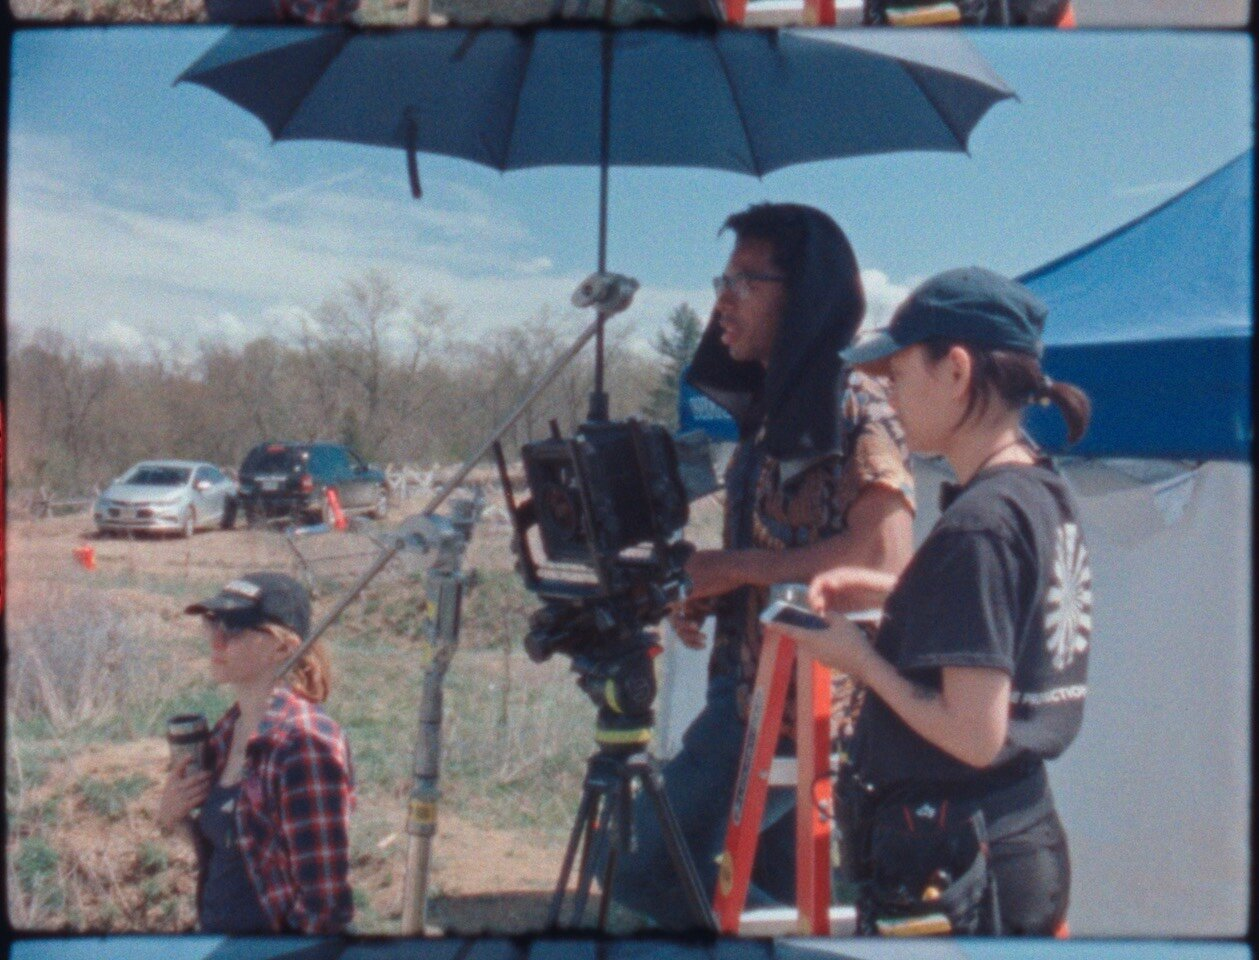 This is me at the camera with my Camera Assistant,  Sunnie Kim  next to me on the ladder. She is also a phenomenal cinematographer.